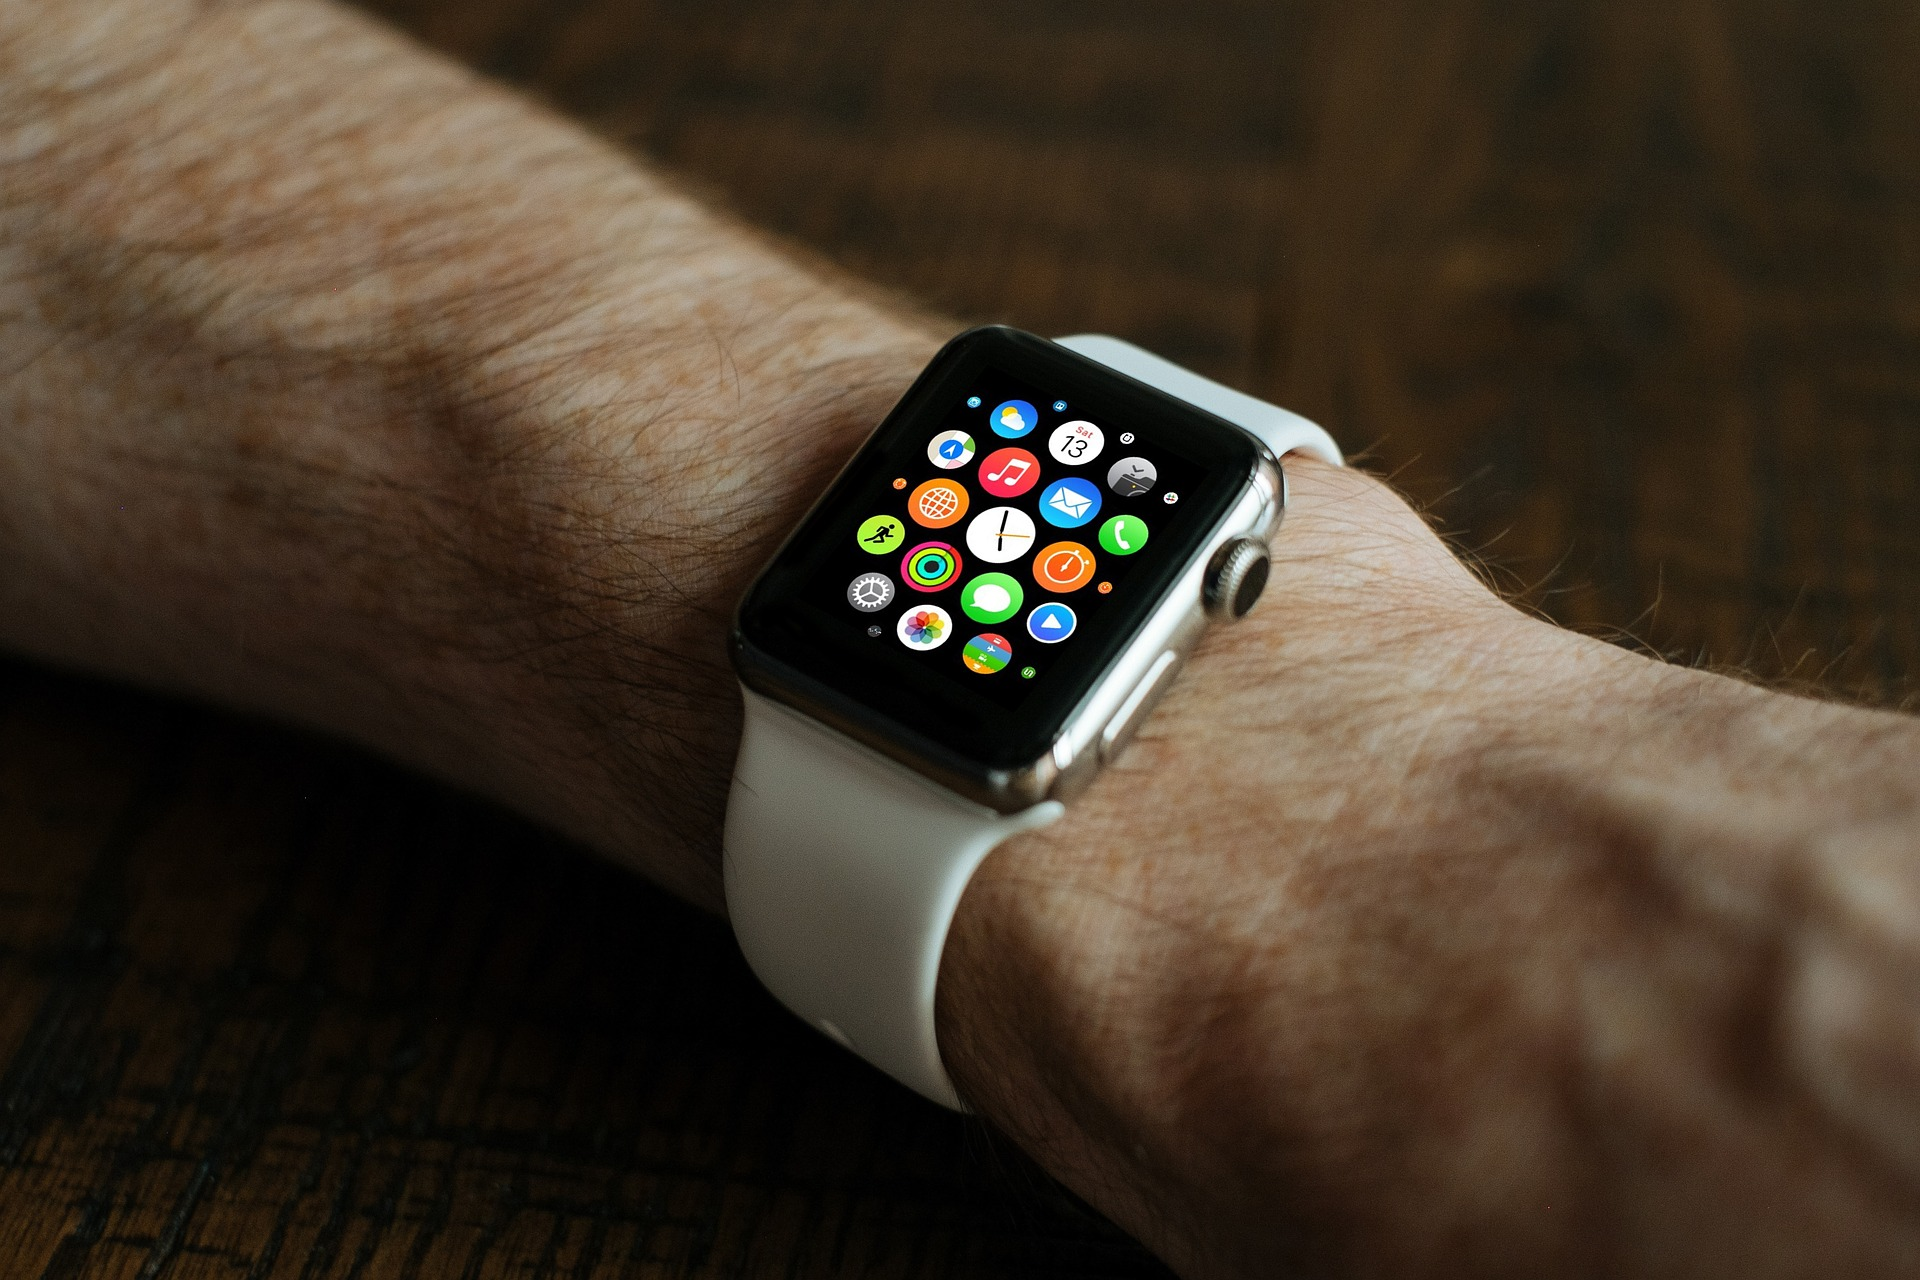 Read more about the article Apple's Heart Rate Monitoring Feature Gets Aetna's Attention